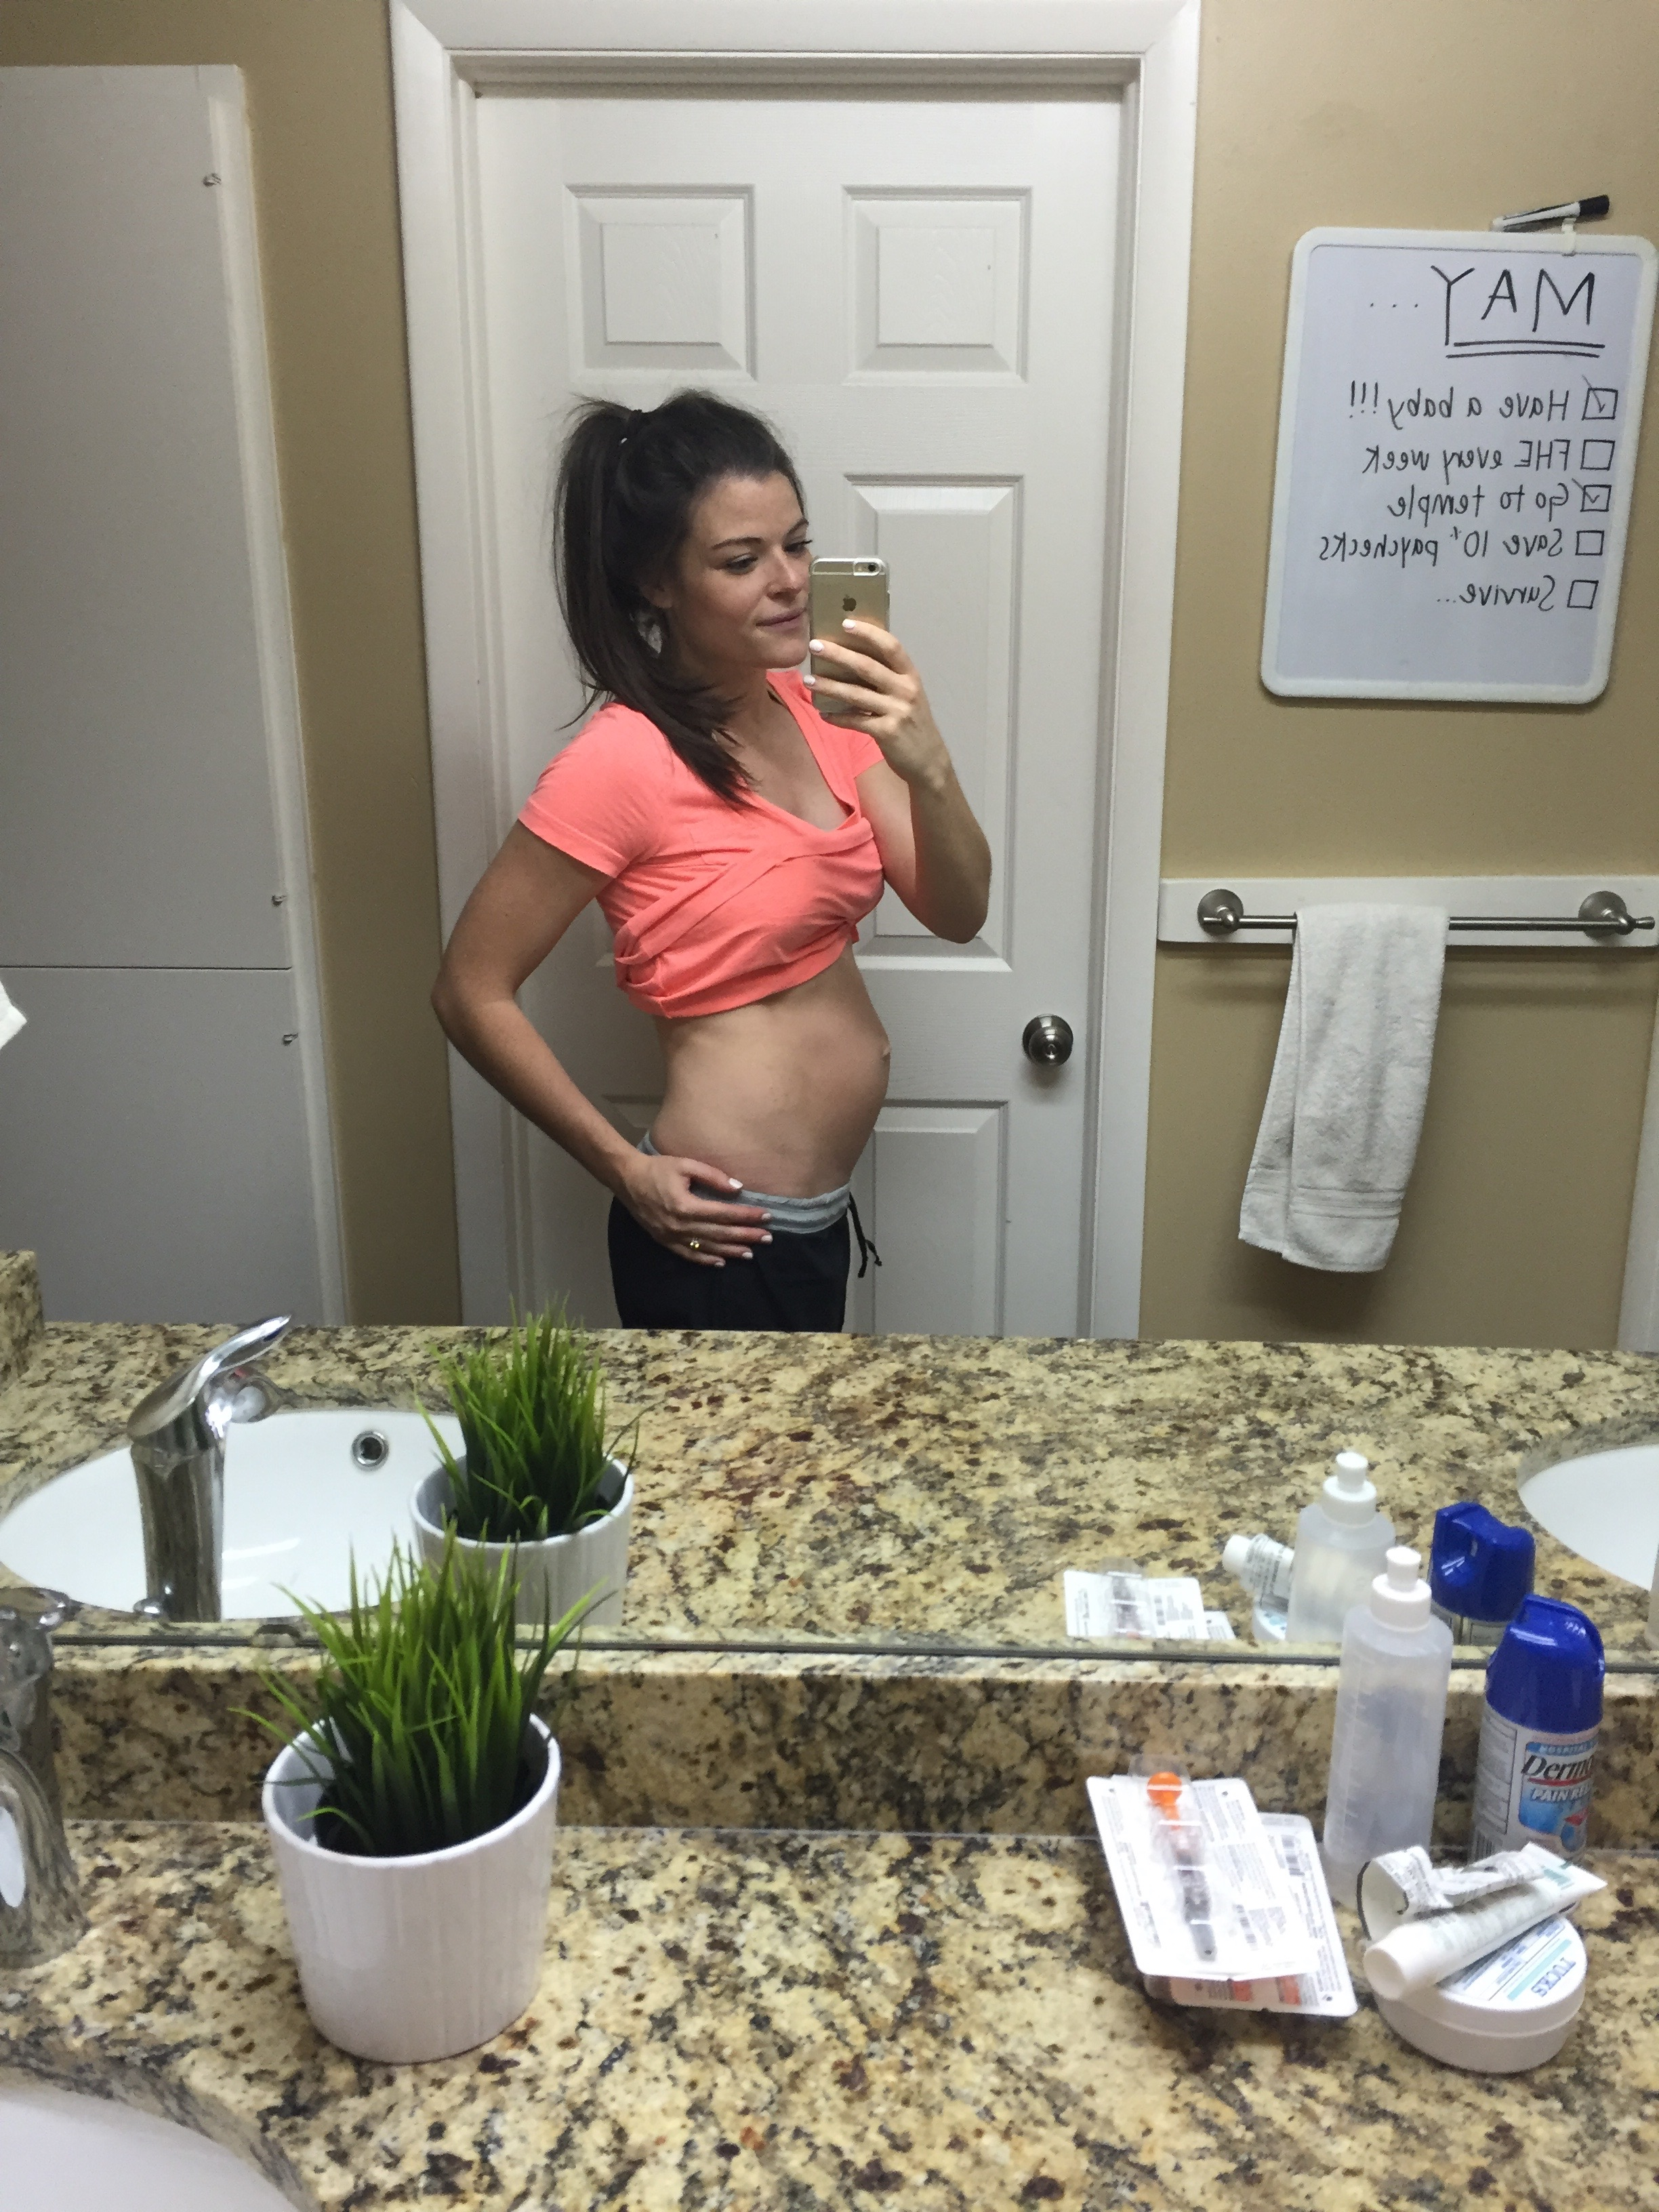 5 days postpartum (and say hello to all the lovely post delivery supplies ^^)